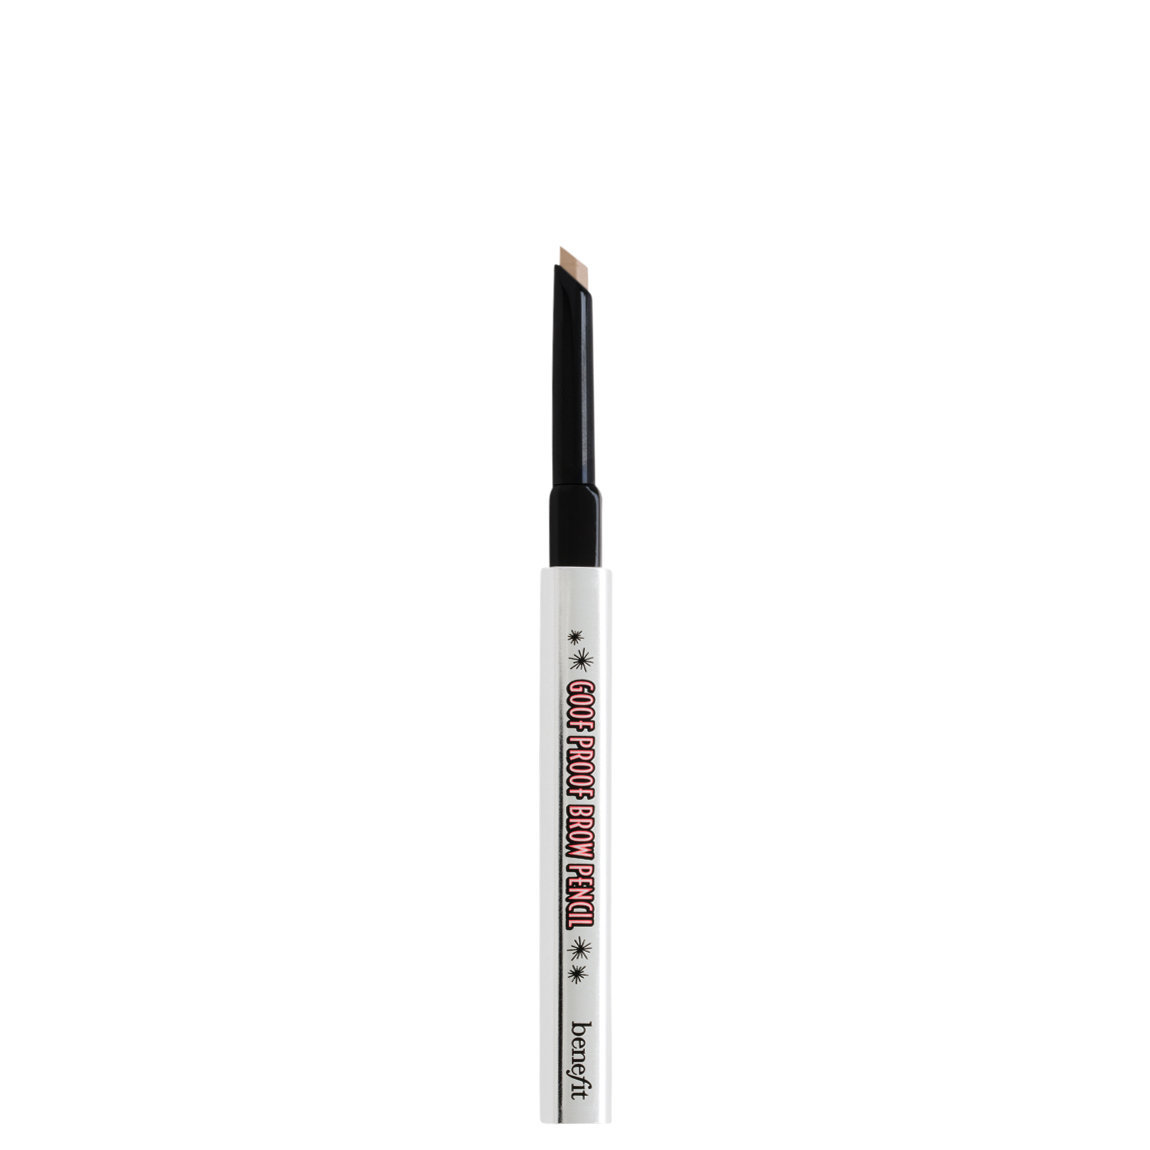 Benefit Cosmetics Goof Proof Brow Pencil Mini 01 Cool Light Blonde